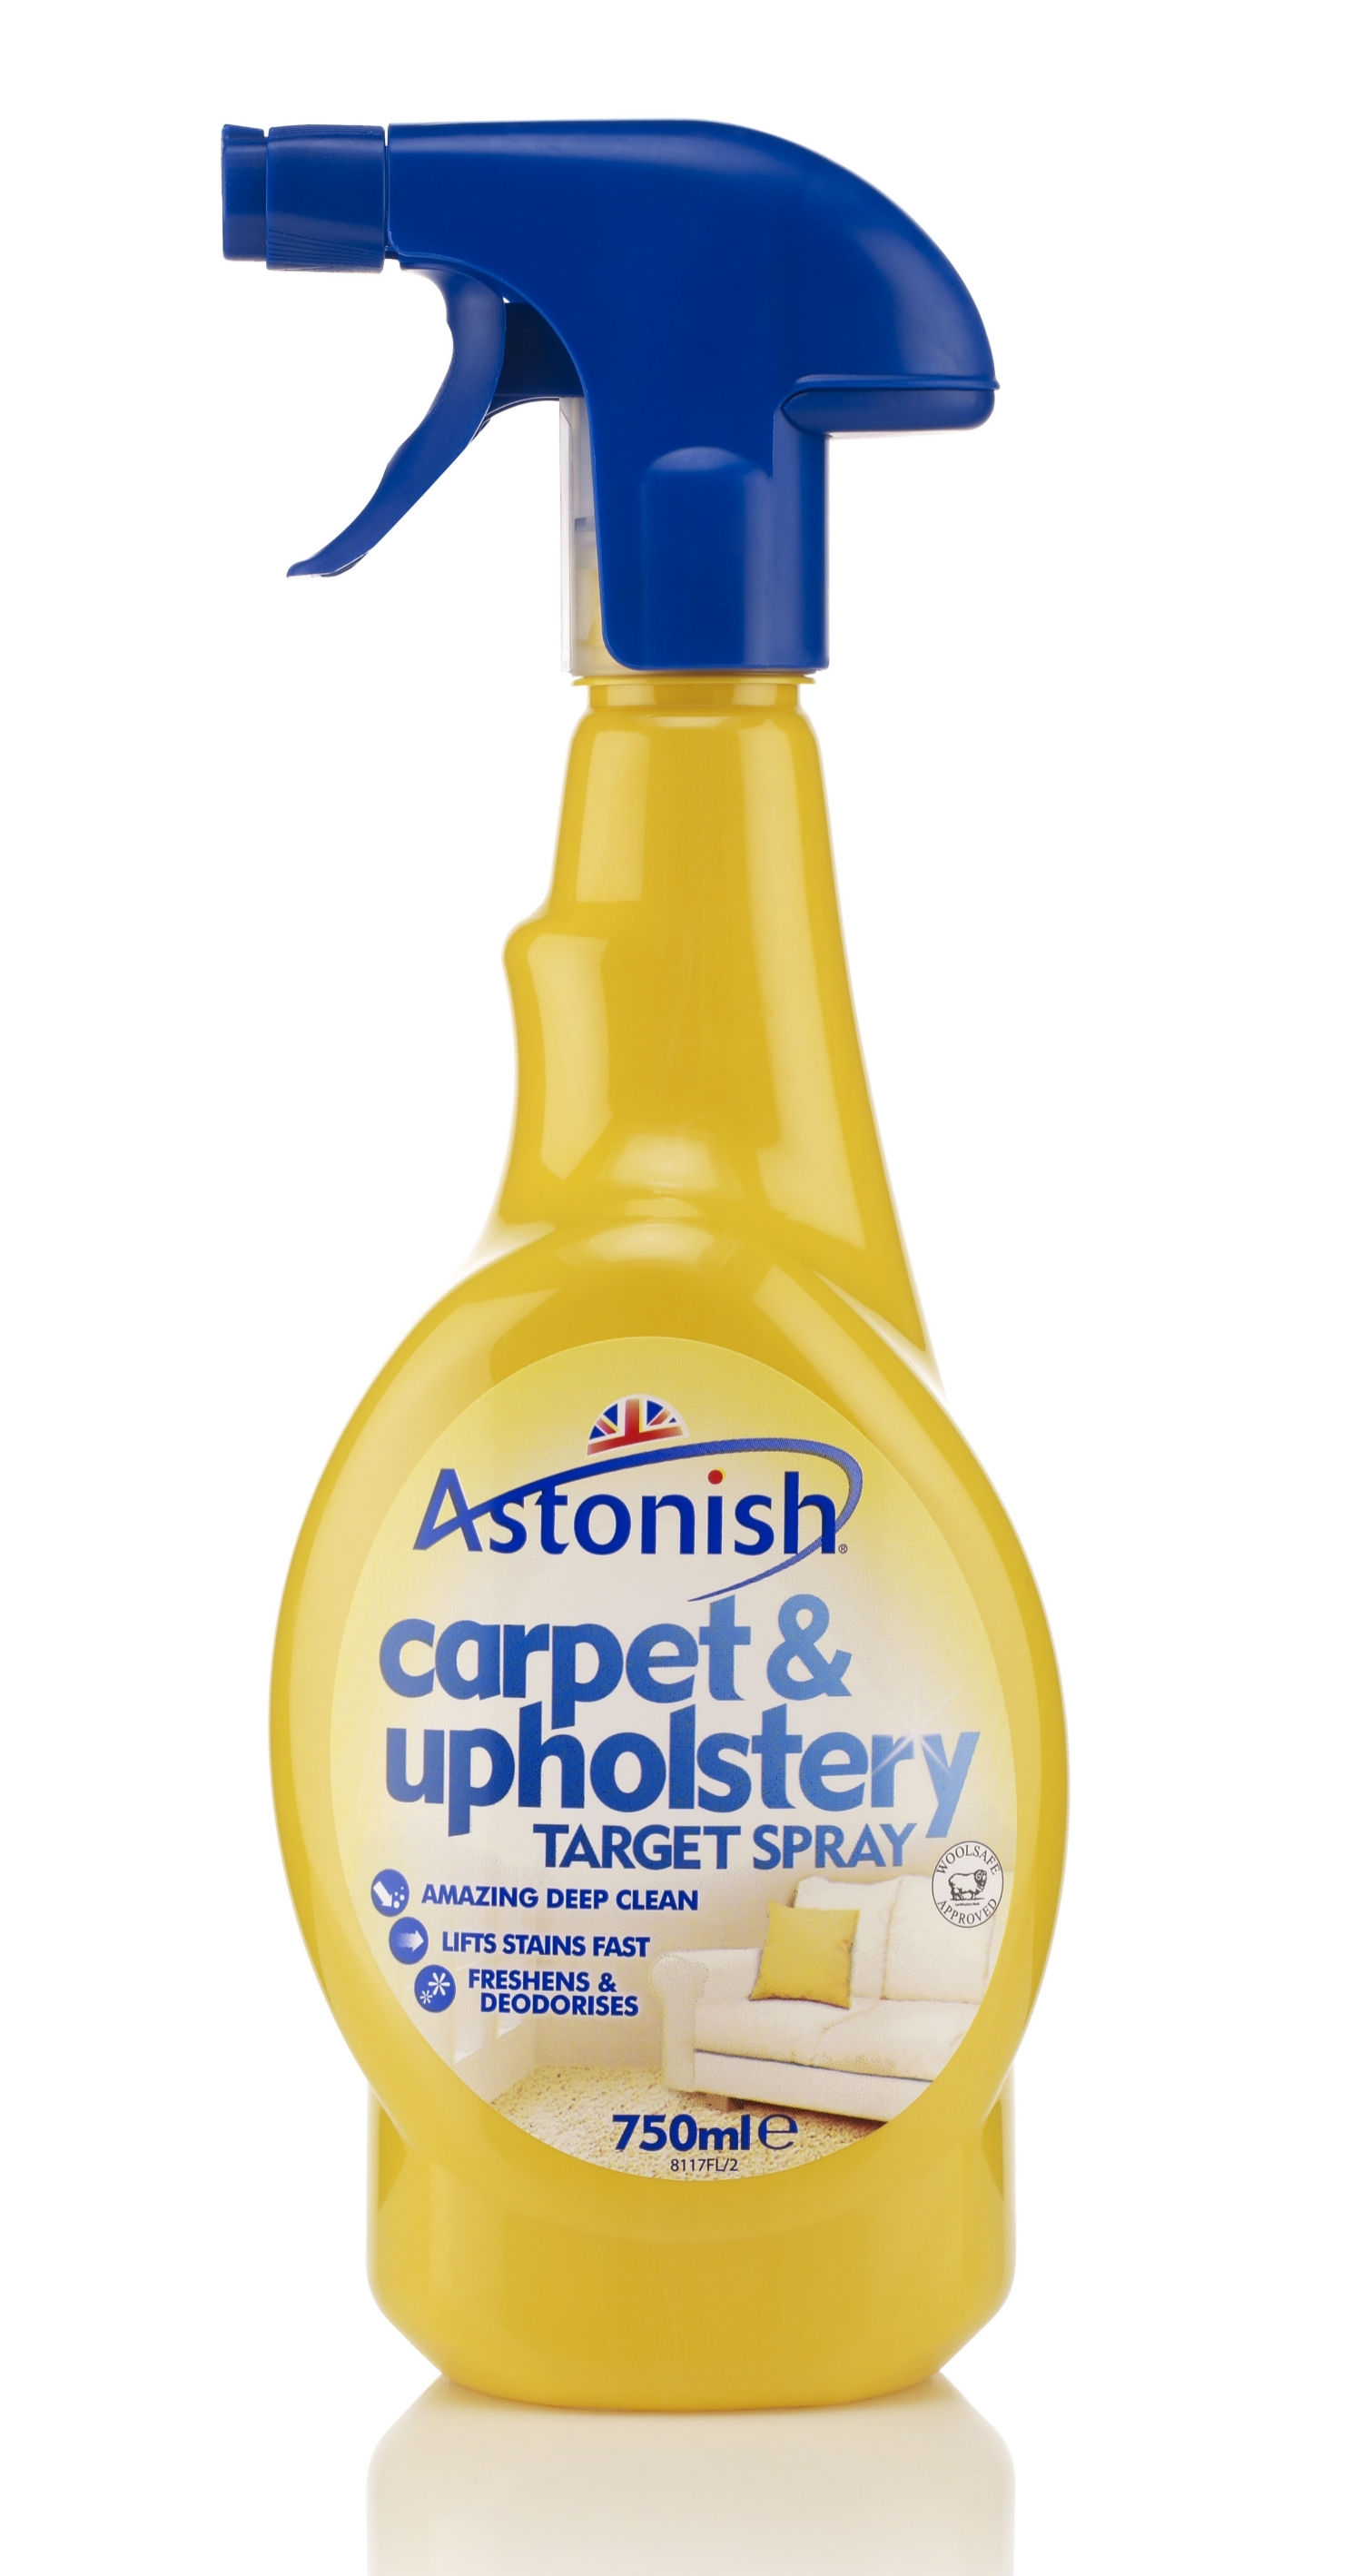 Astonish Carpet & Upholstery Target Spray 750ml Trigger.JPG